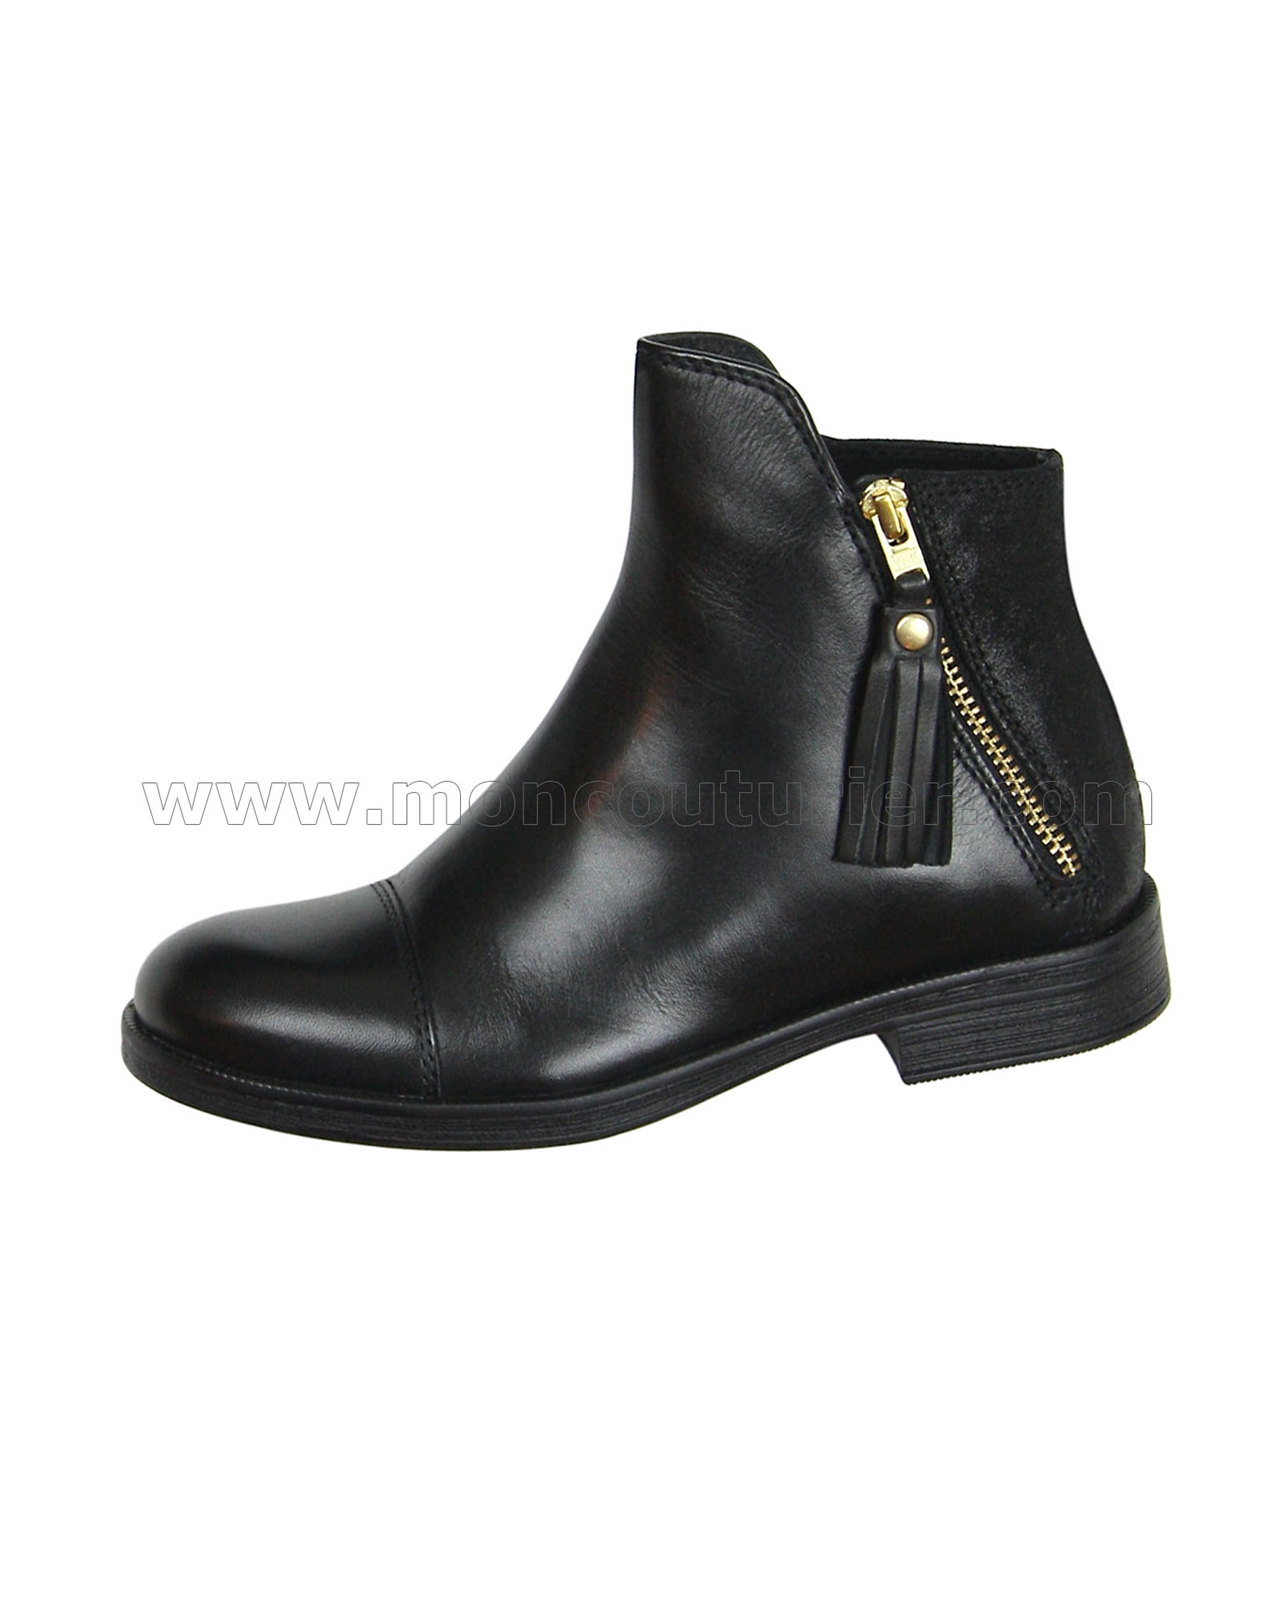 half boots for girls